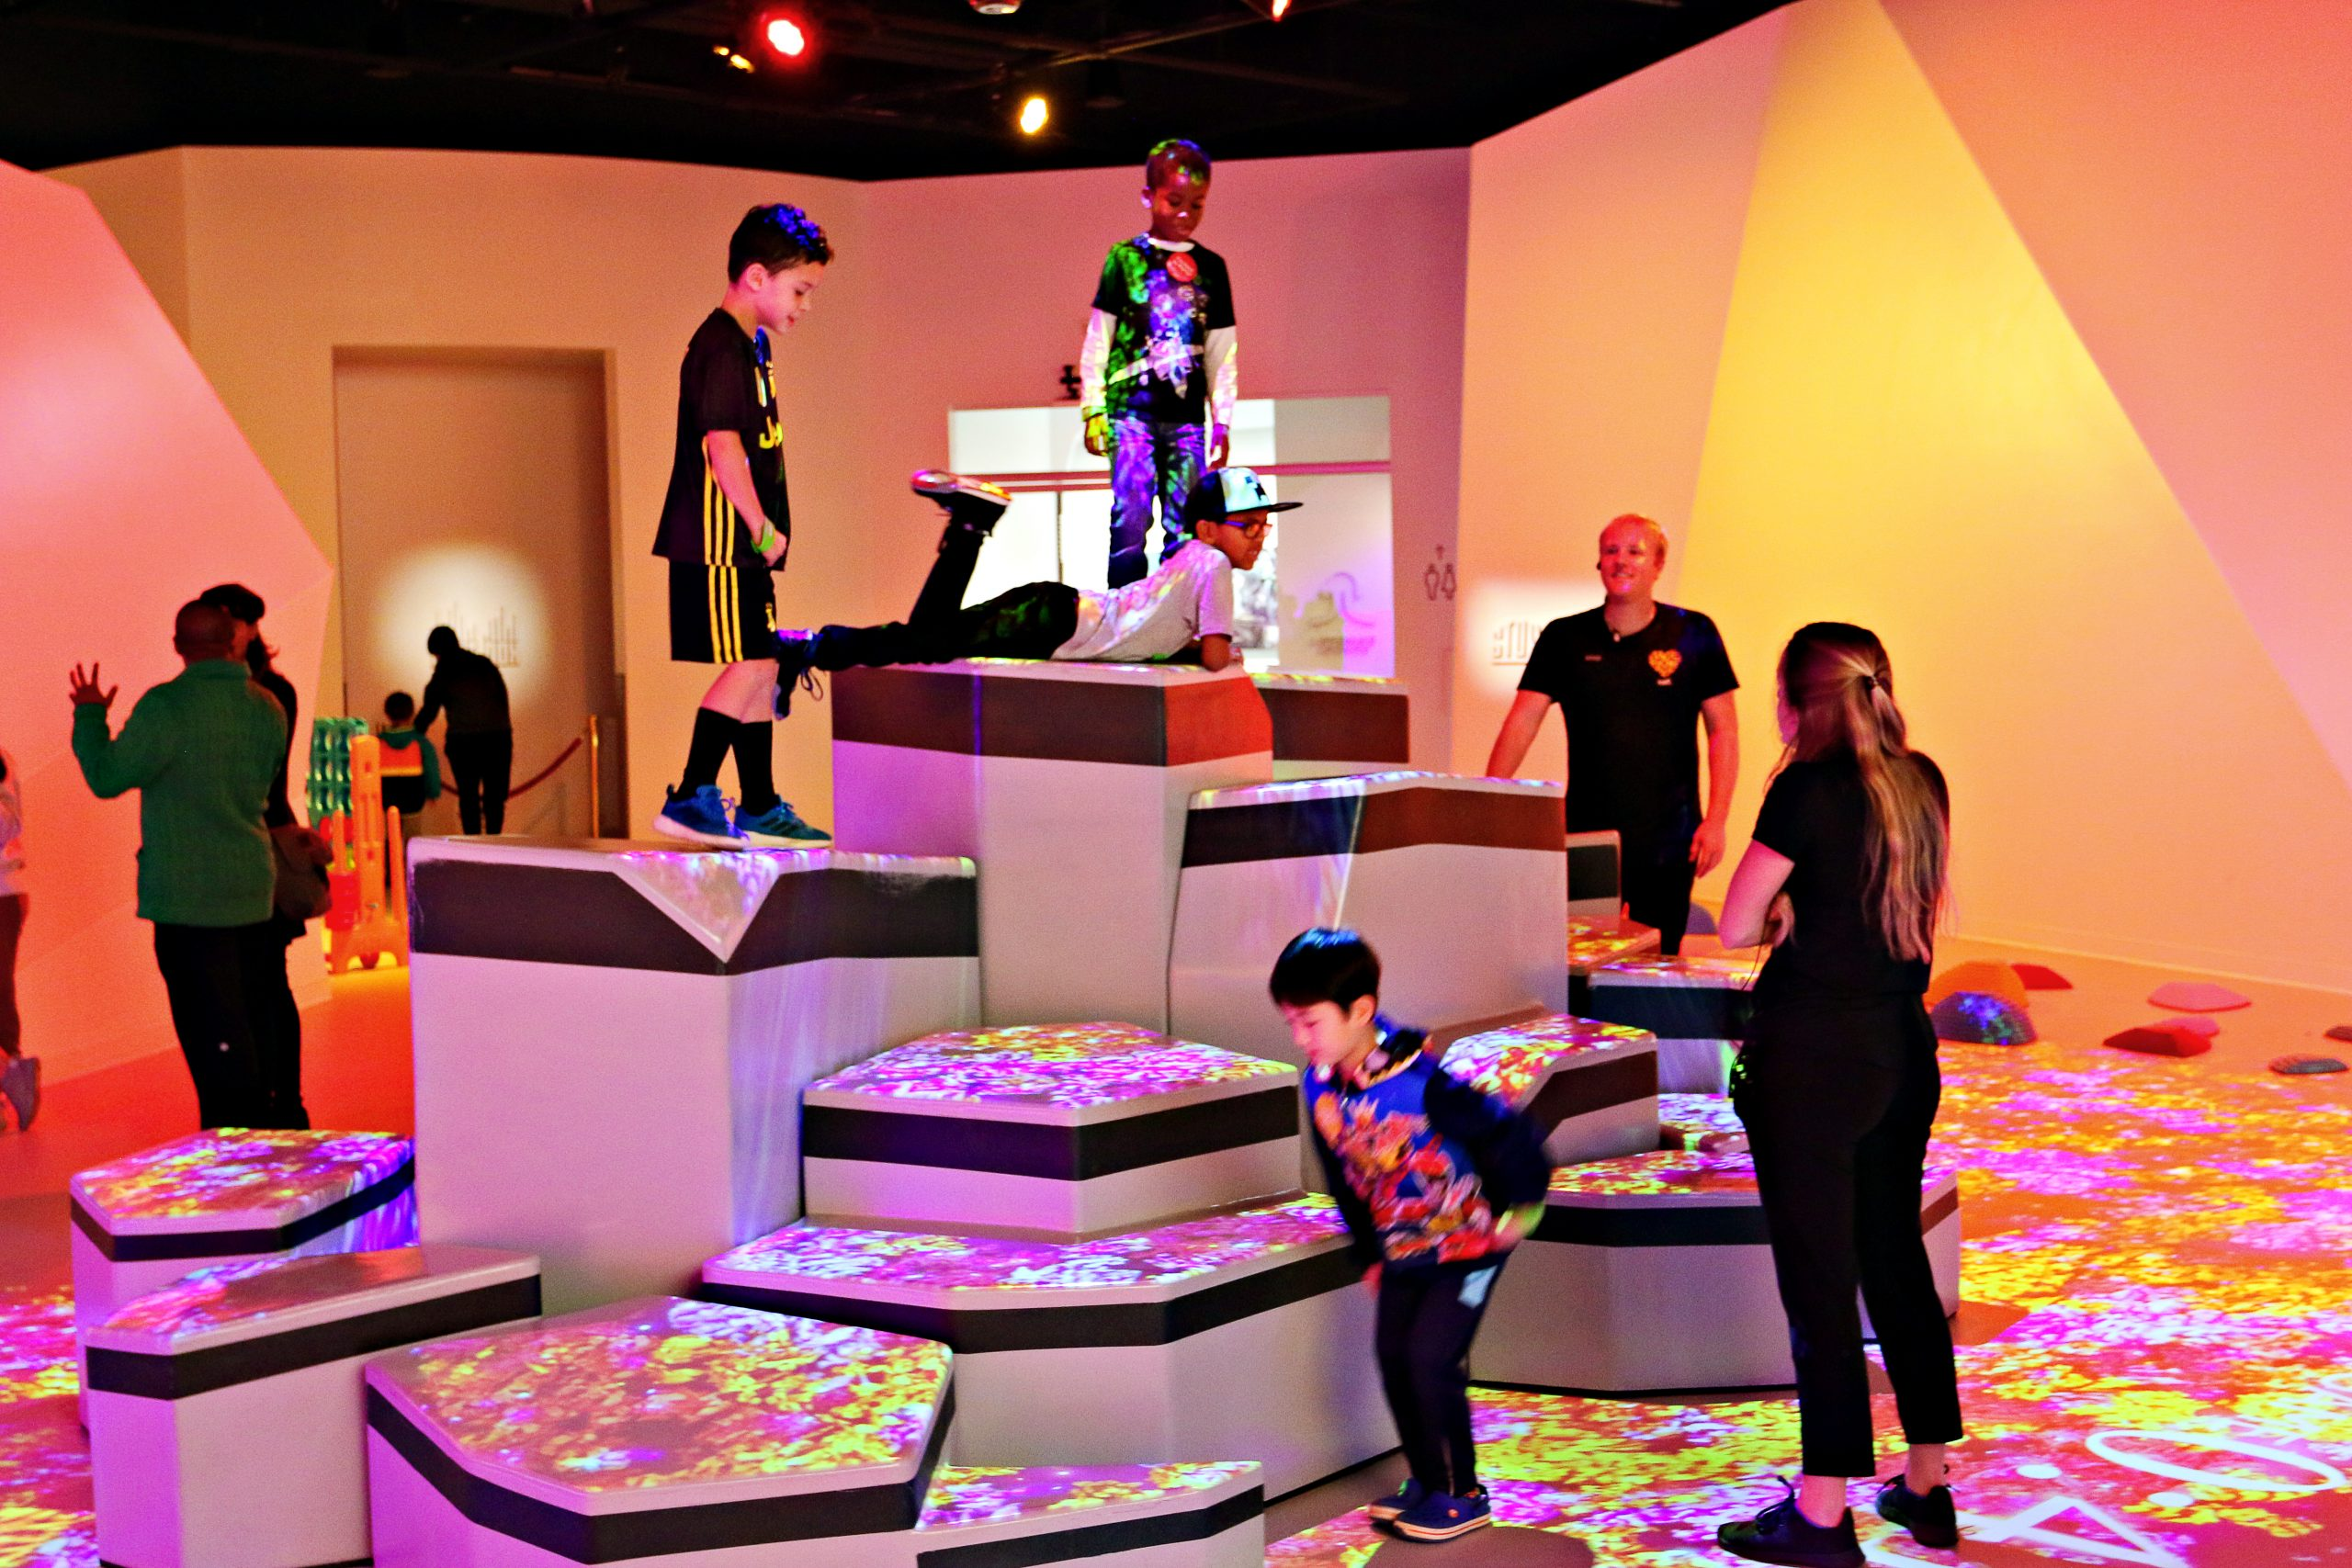 Kids playing at Kefi, a unique and innovative play space in Buckhead Atlanta.